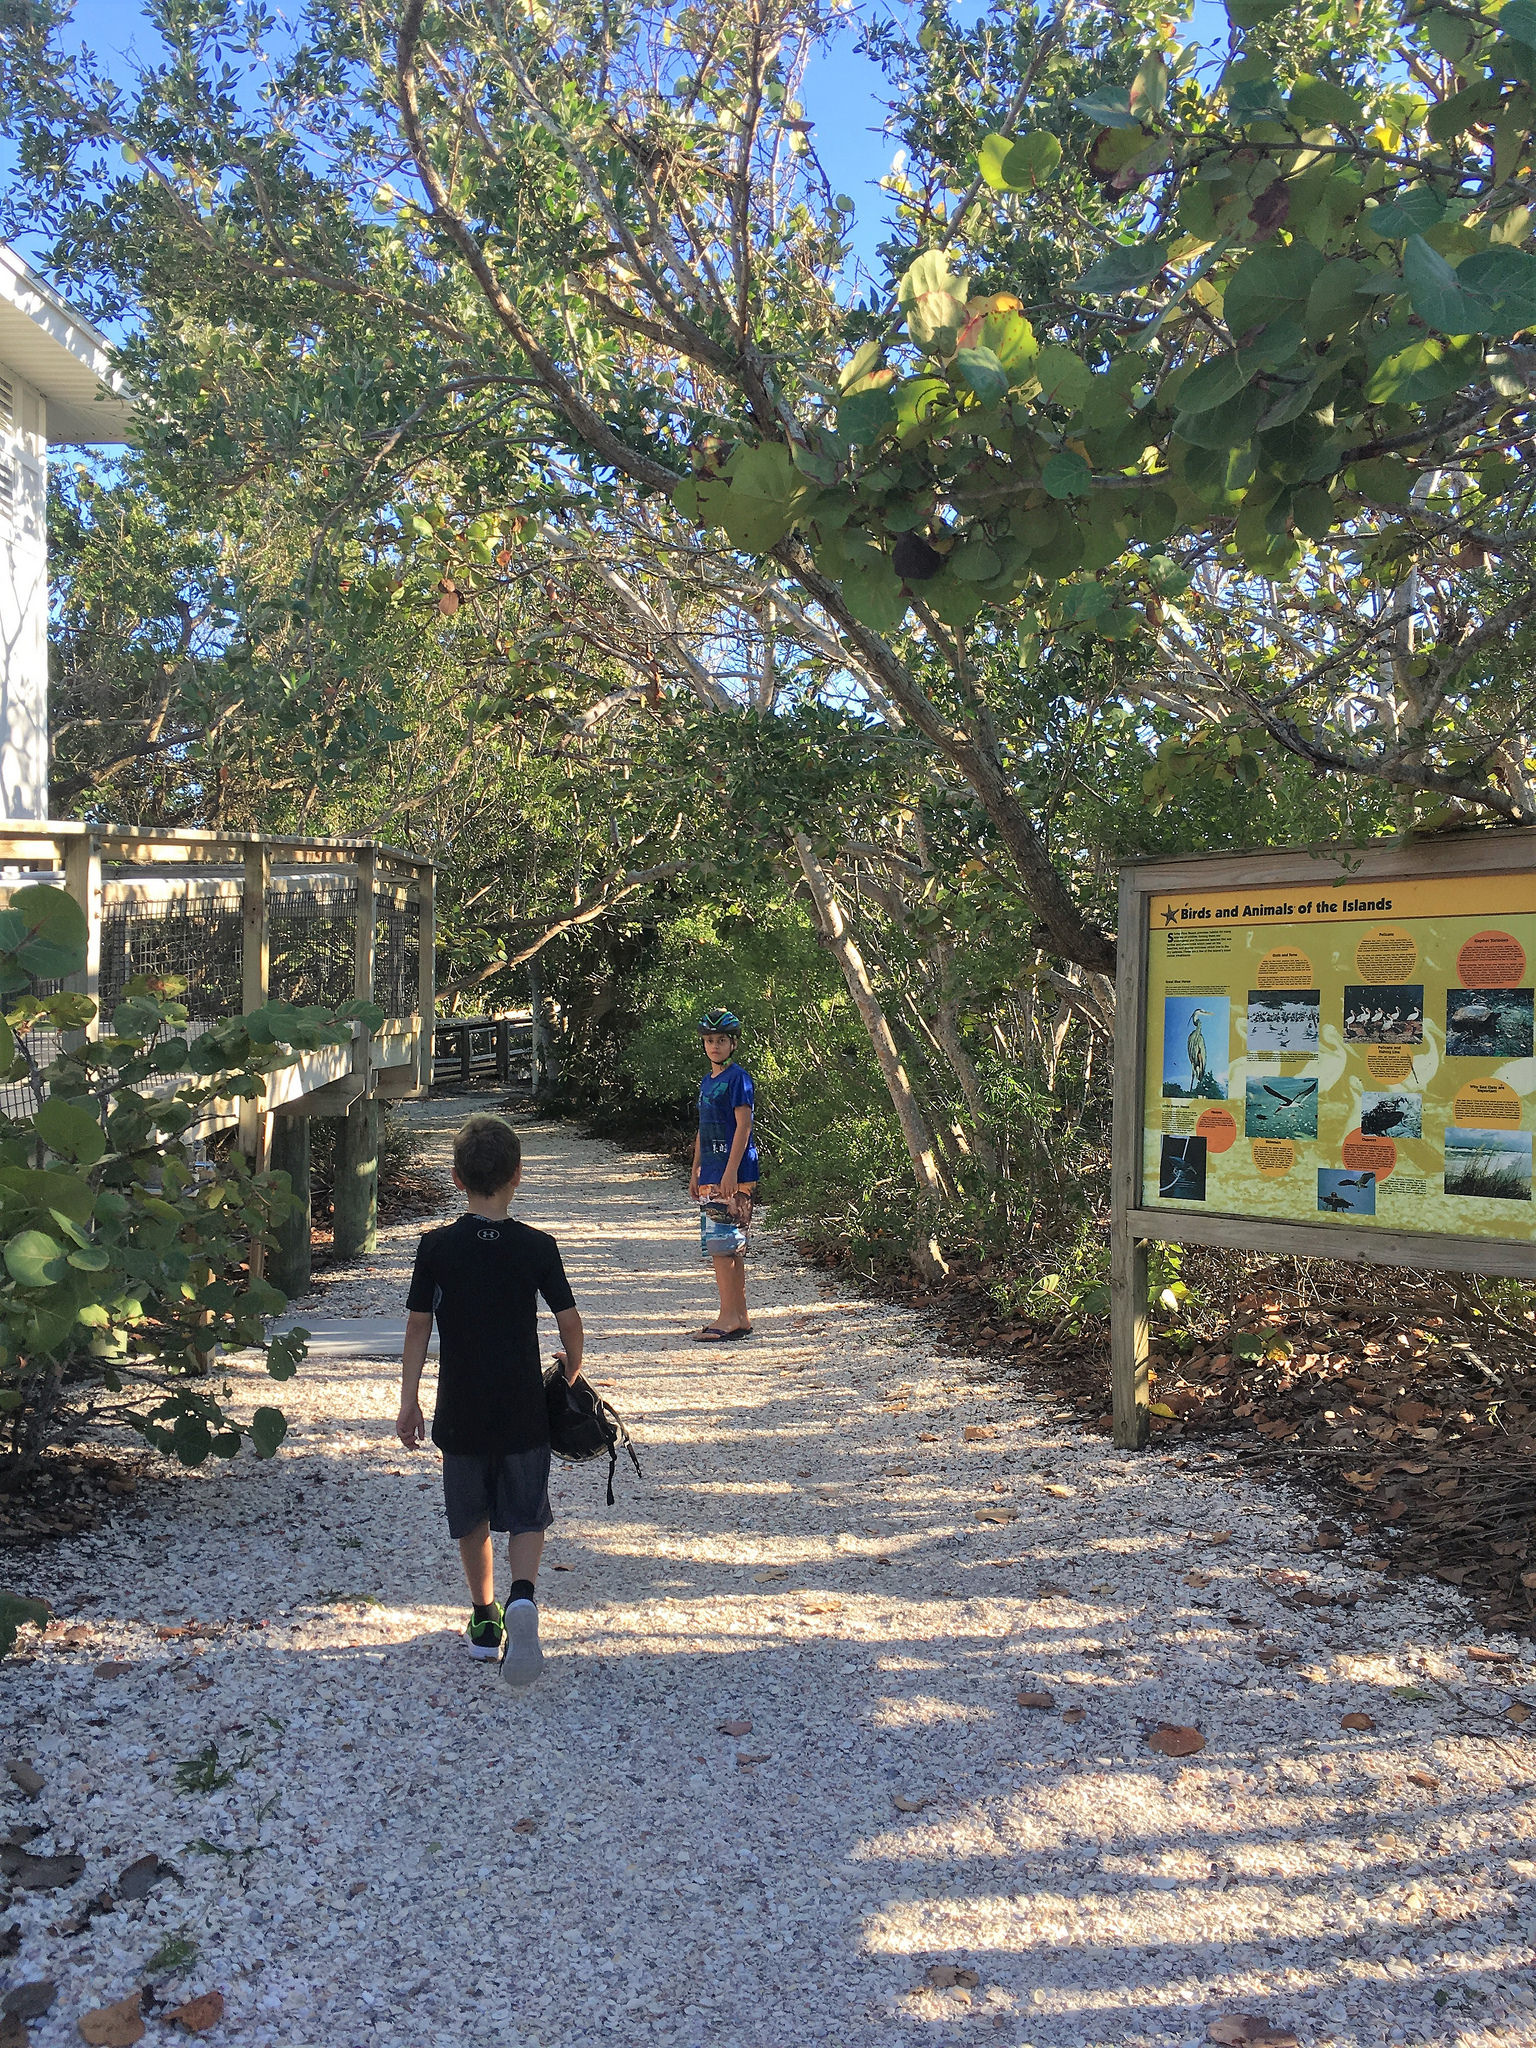 What to see in Manasota KEy Florida - Stump Pass State Park